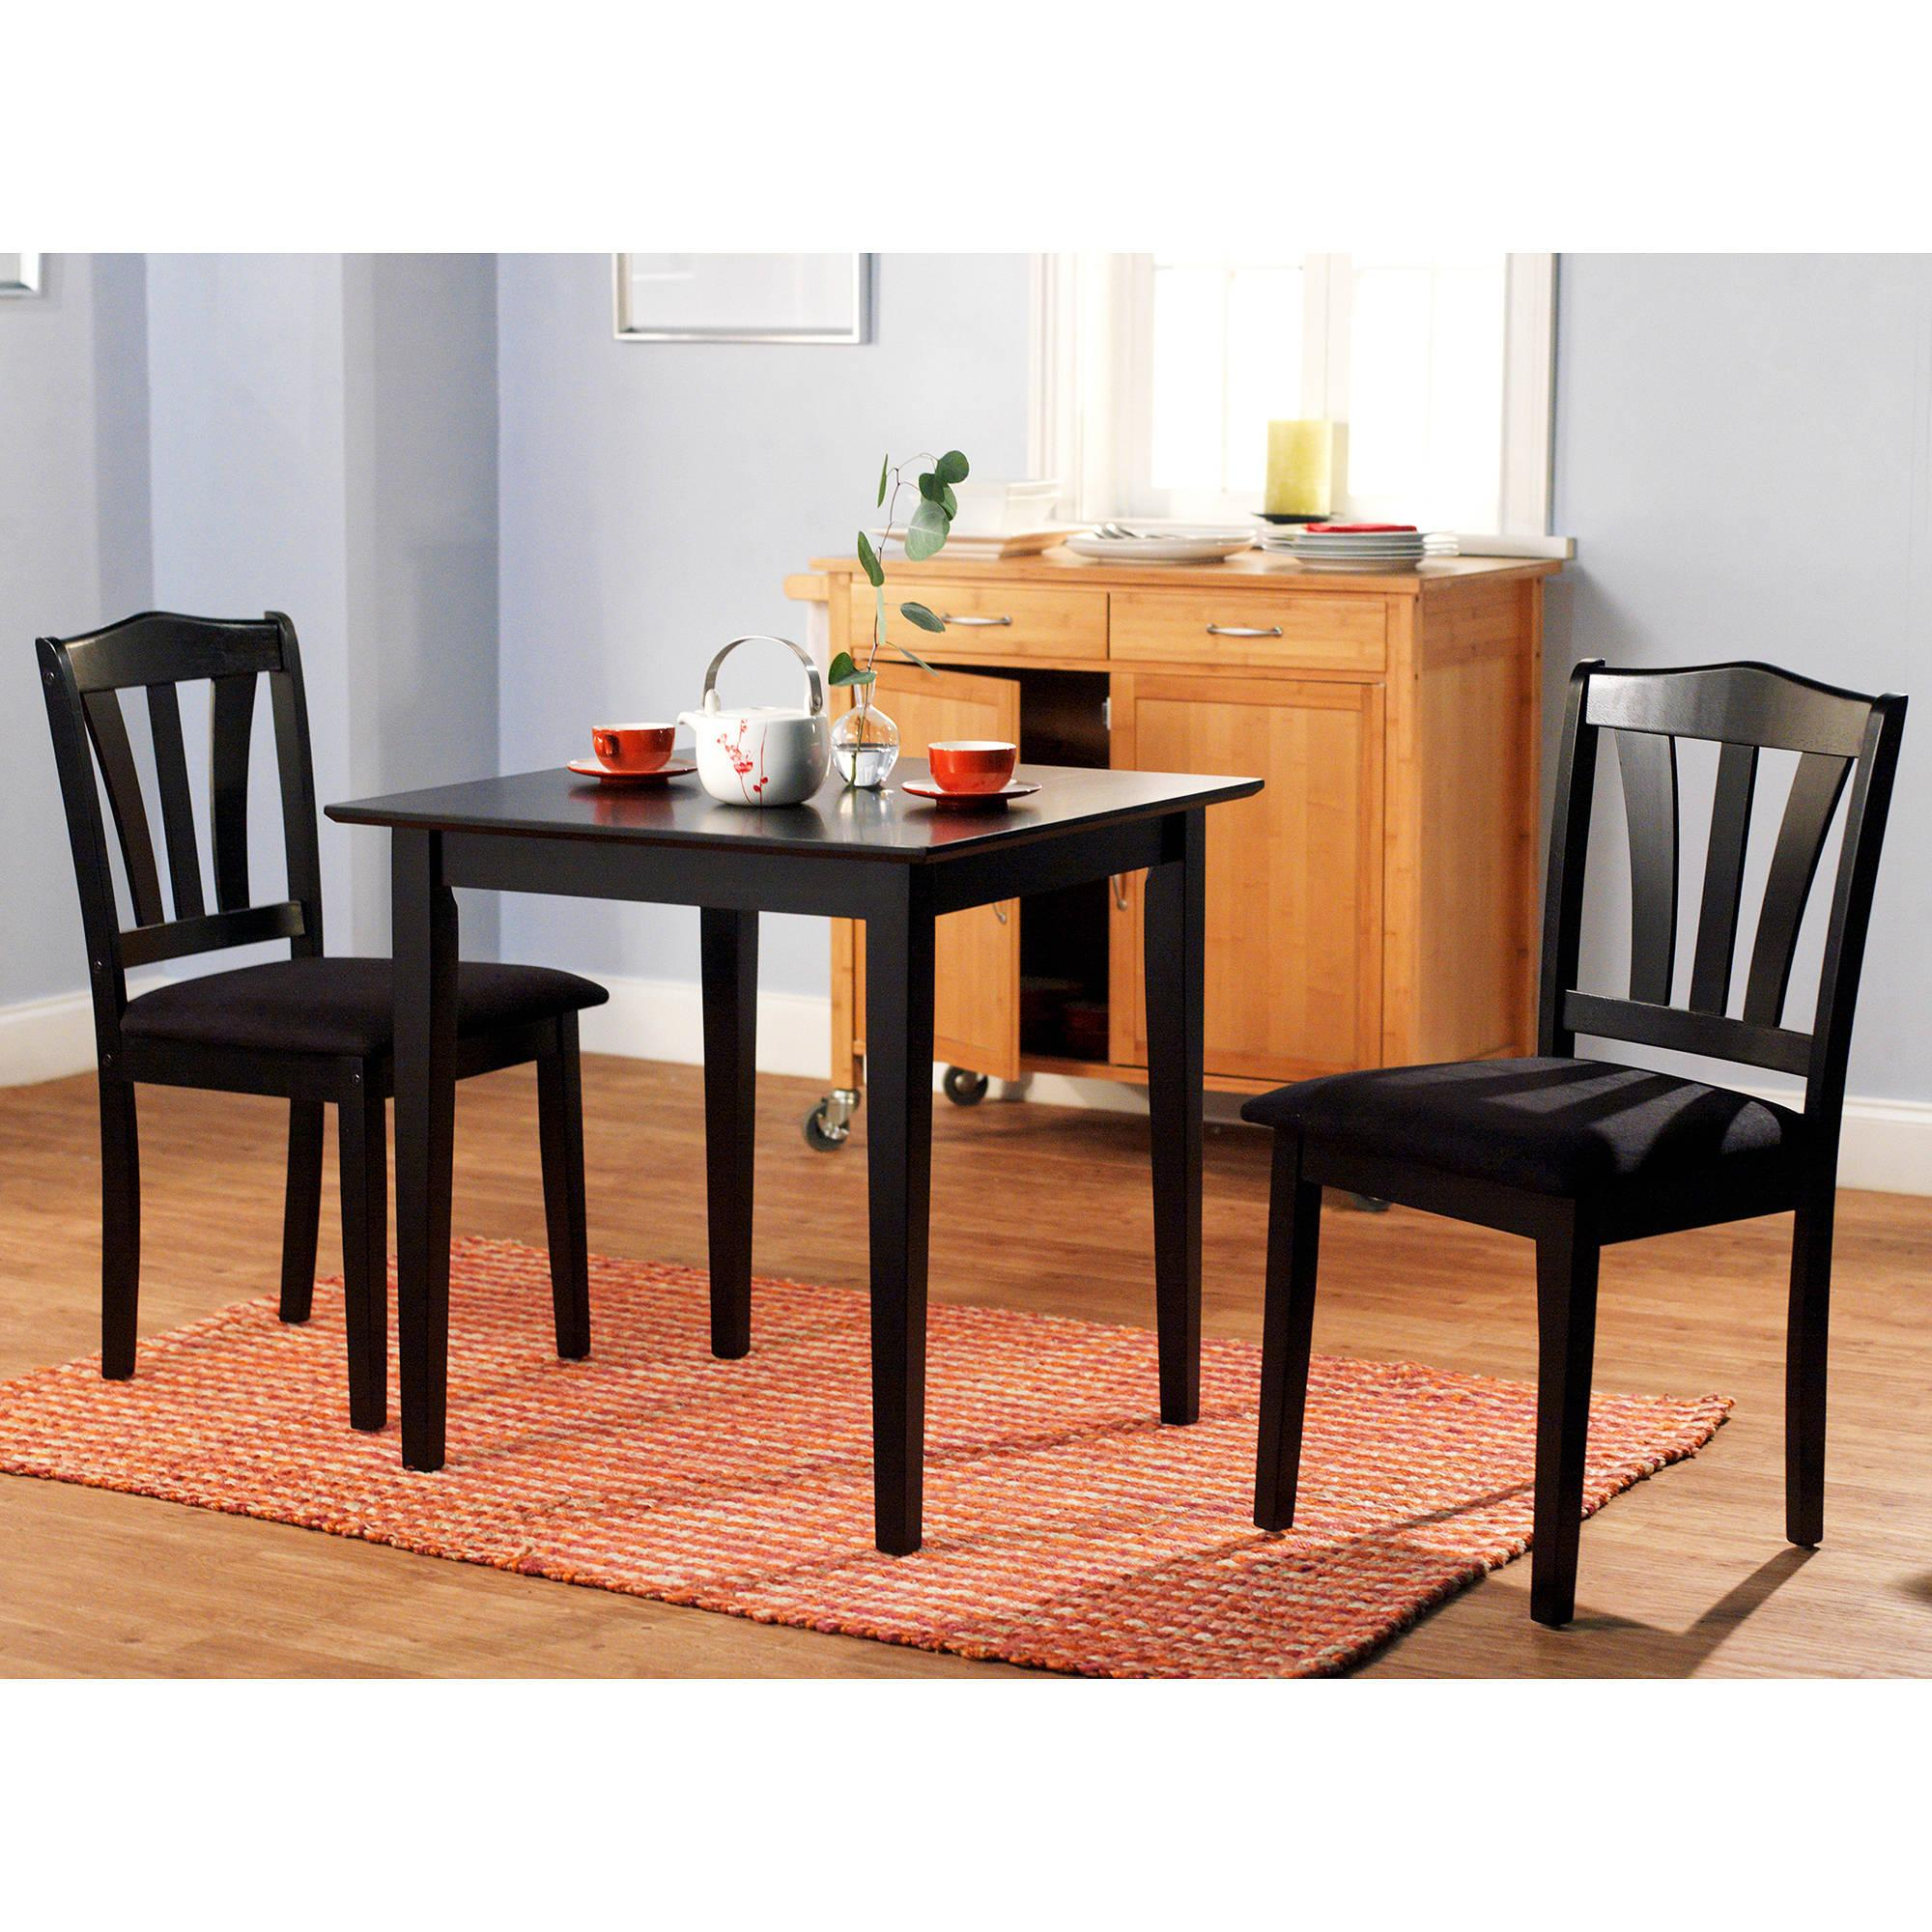 Small Kitchen Table For Two 3 piece dining set table 2 chairs kitchen room wood furniture 3 piece dining set table 2 chairs kitchen room wood furniture dinette modern new workwithnaturefo